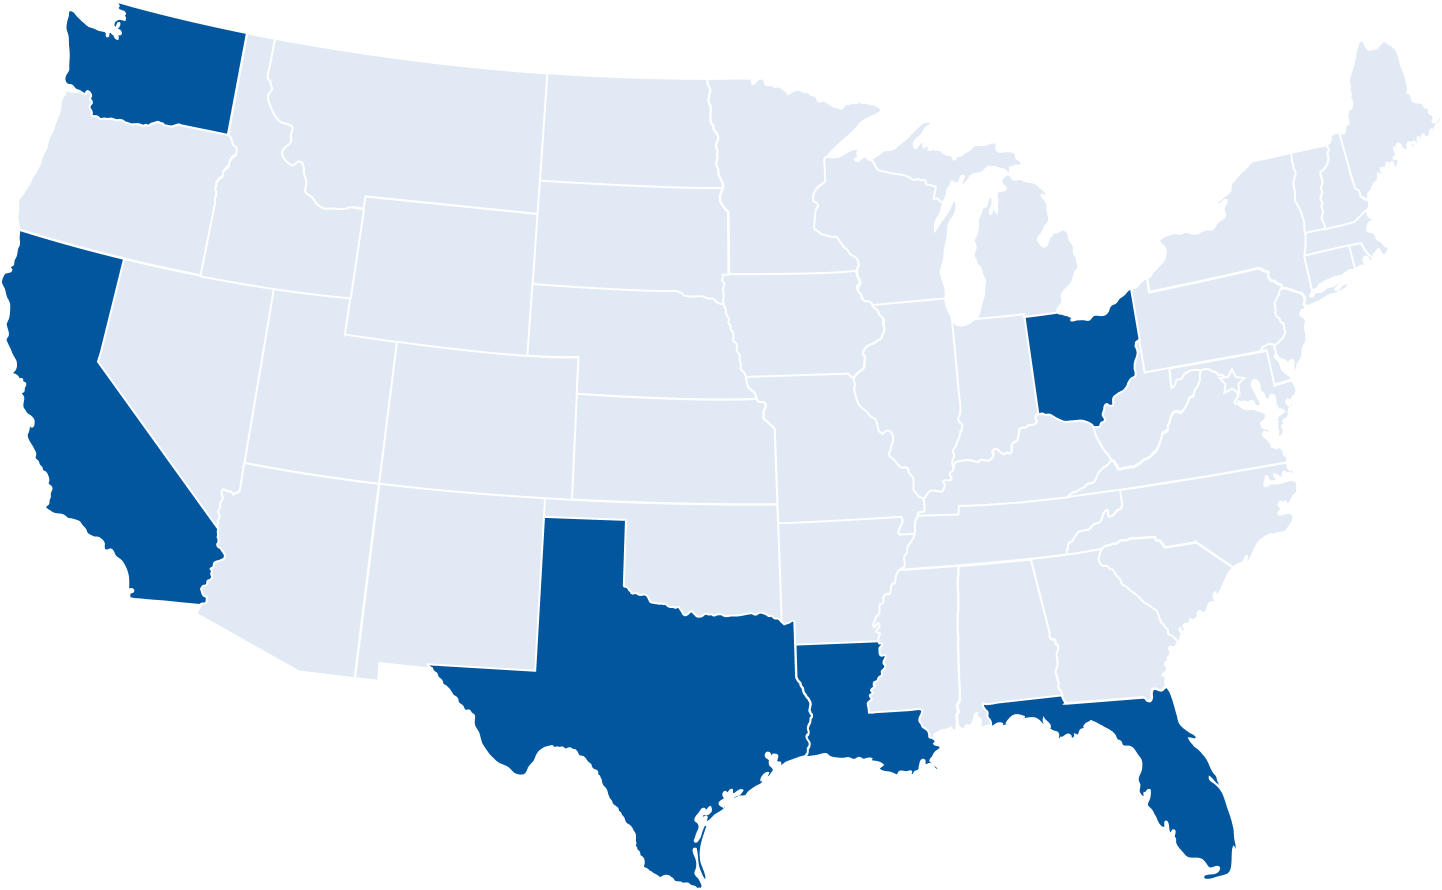 Map of the US with highlighted states